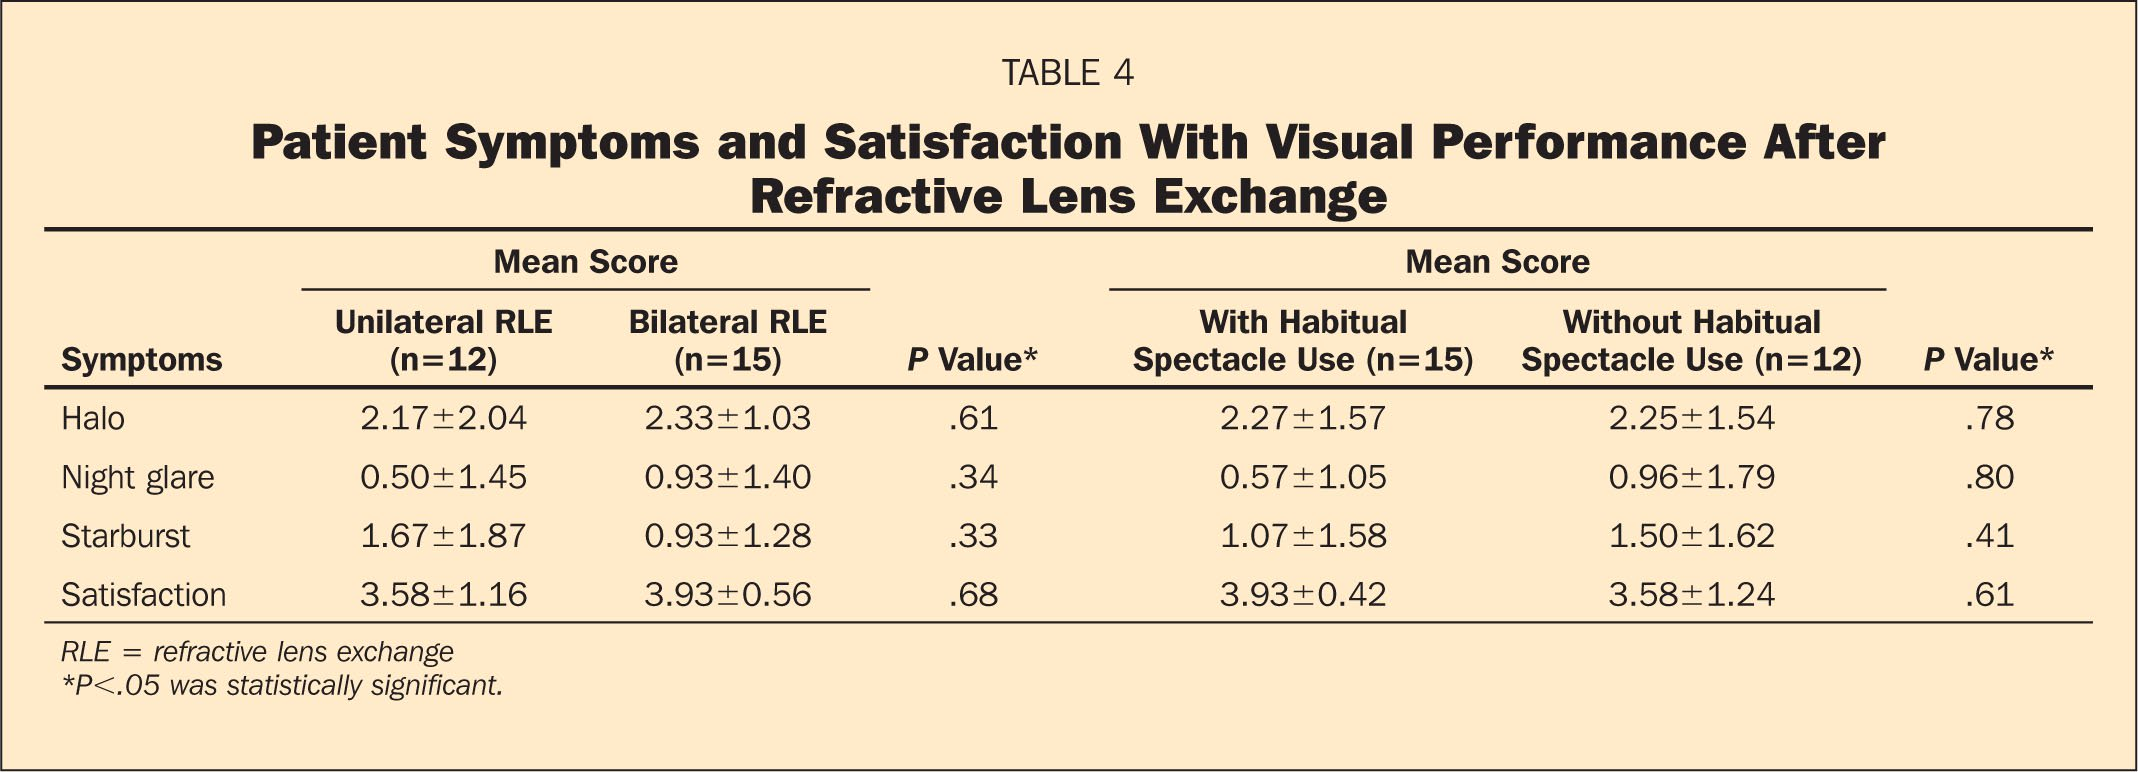 Patient Symptoms and Satisfaction With Visual Performance After Refractive Lens Exchange